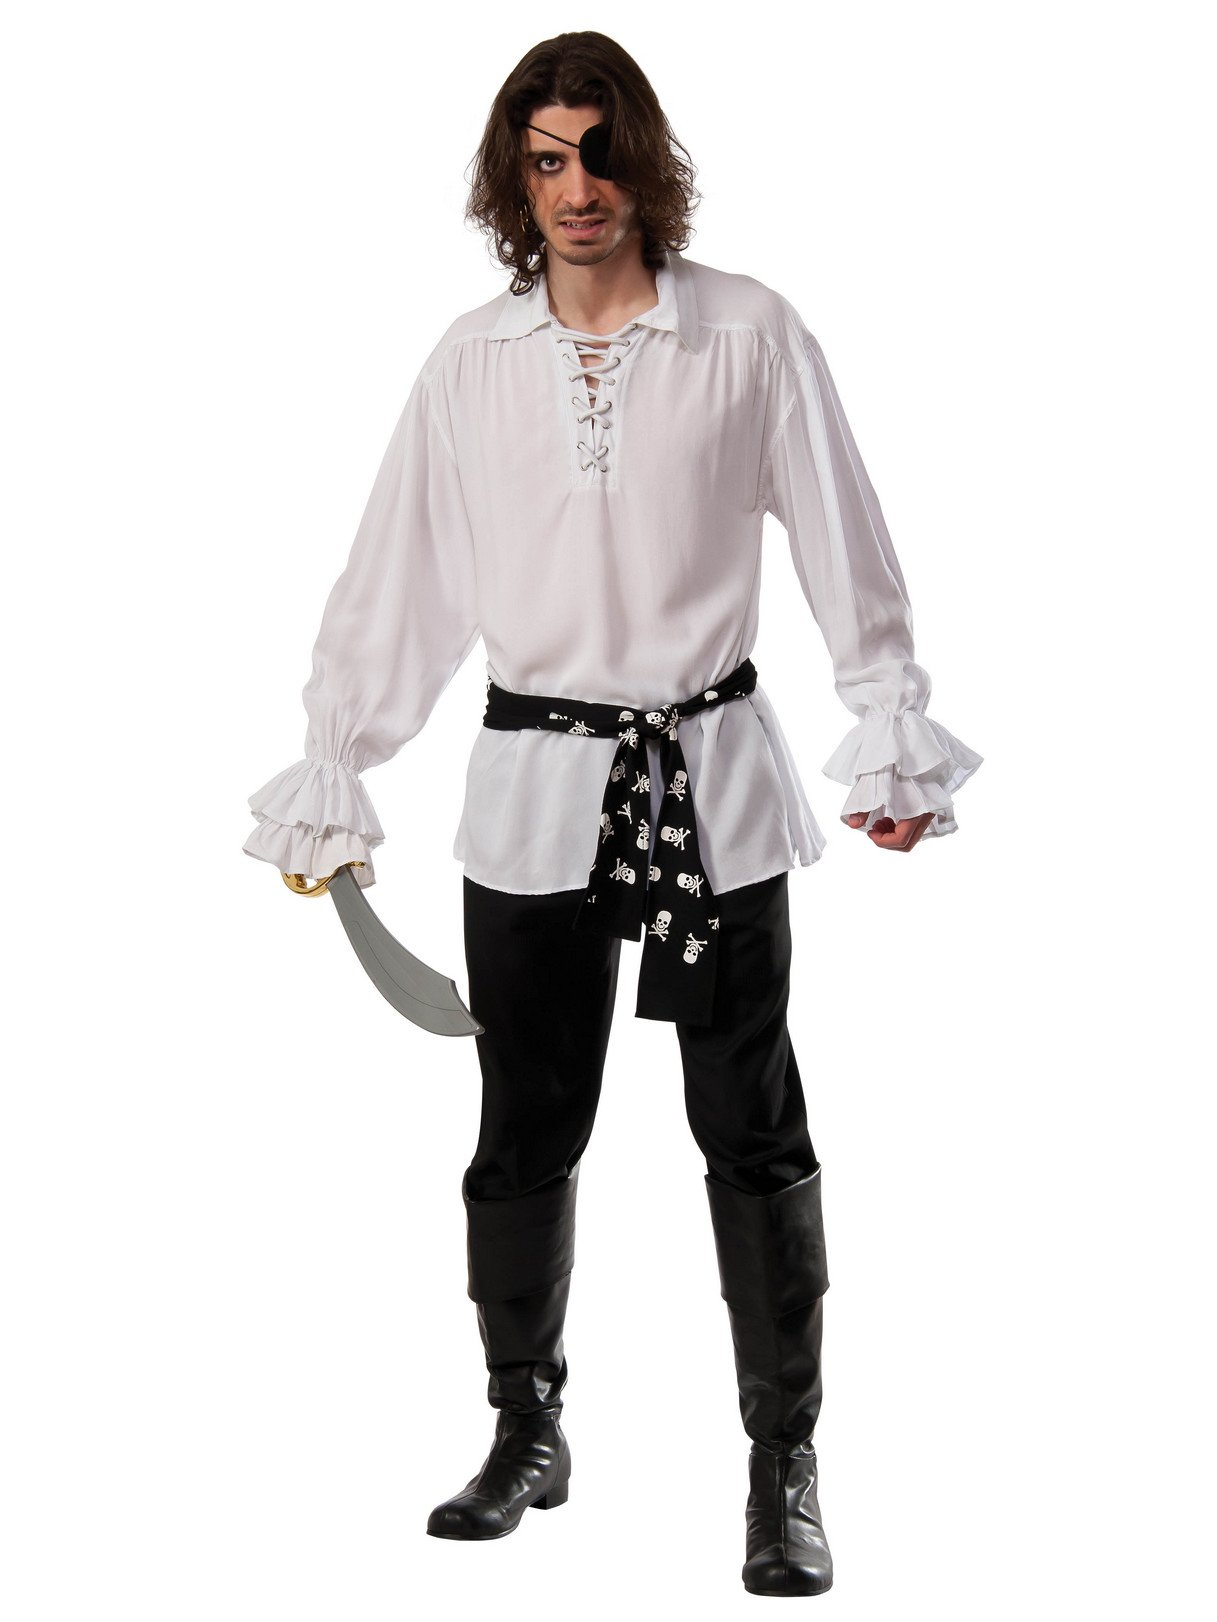 Rubie's Costume Co Men's Cotton Pirate Shirt, White, Standard